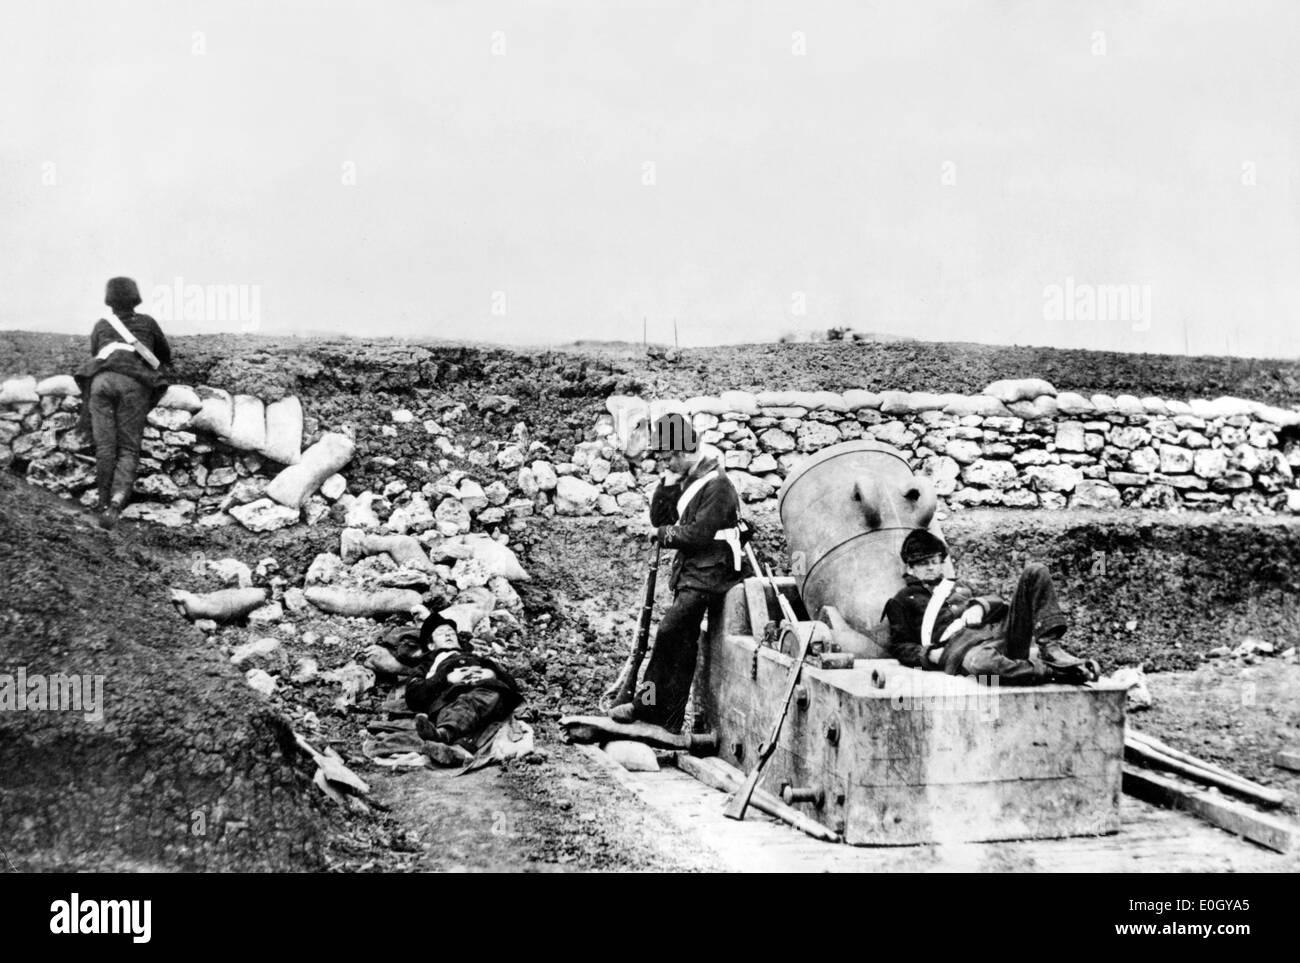 Soldiers during Crimean War - Stock Image